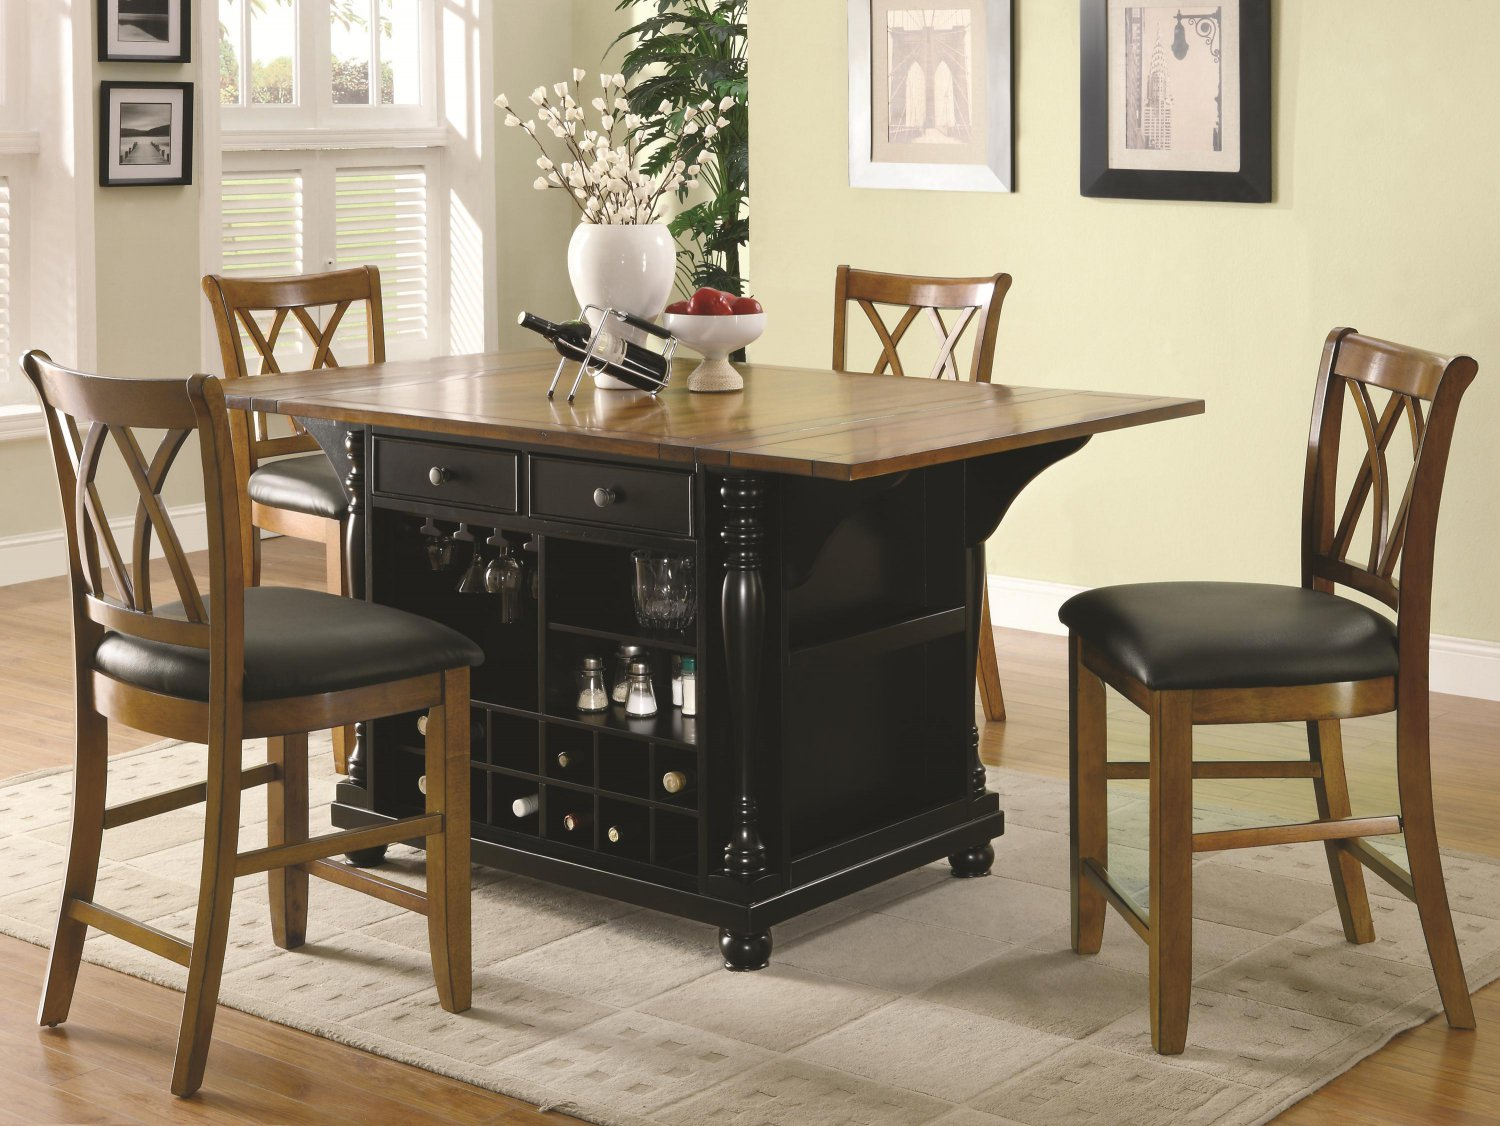 102270 72 counter height kitchen island 5pc dining set